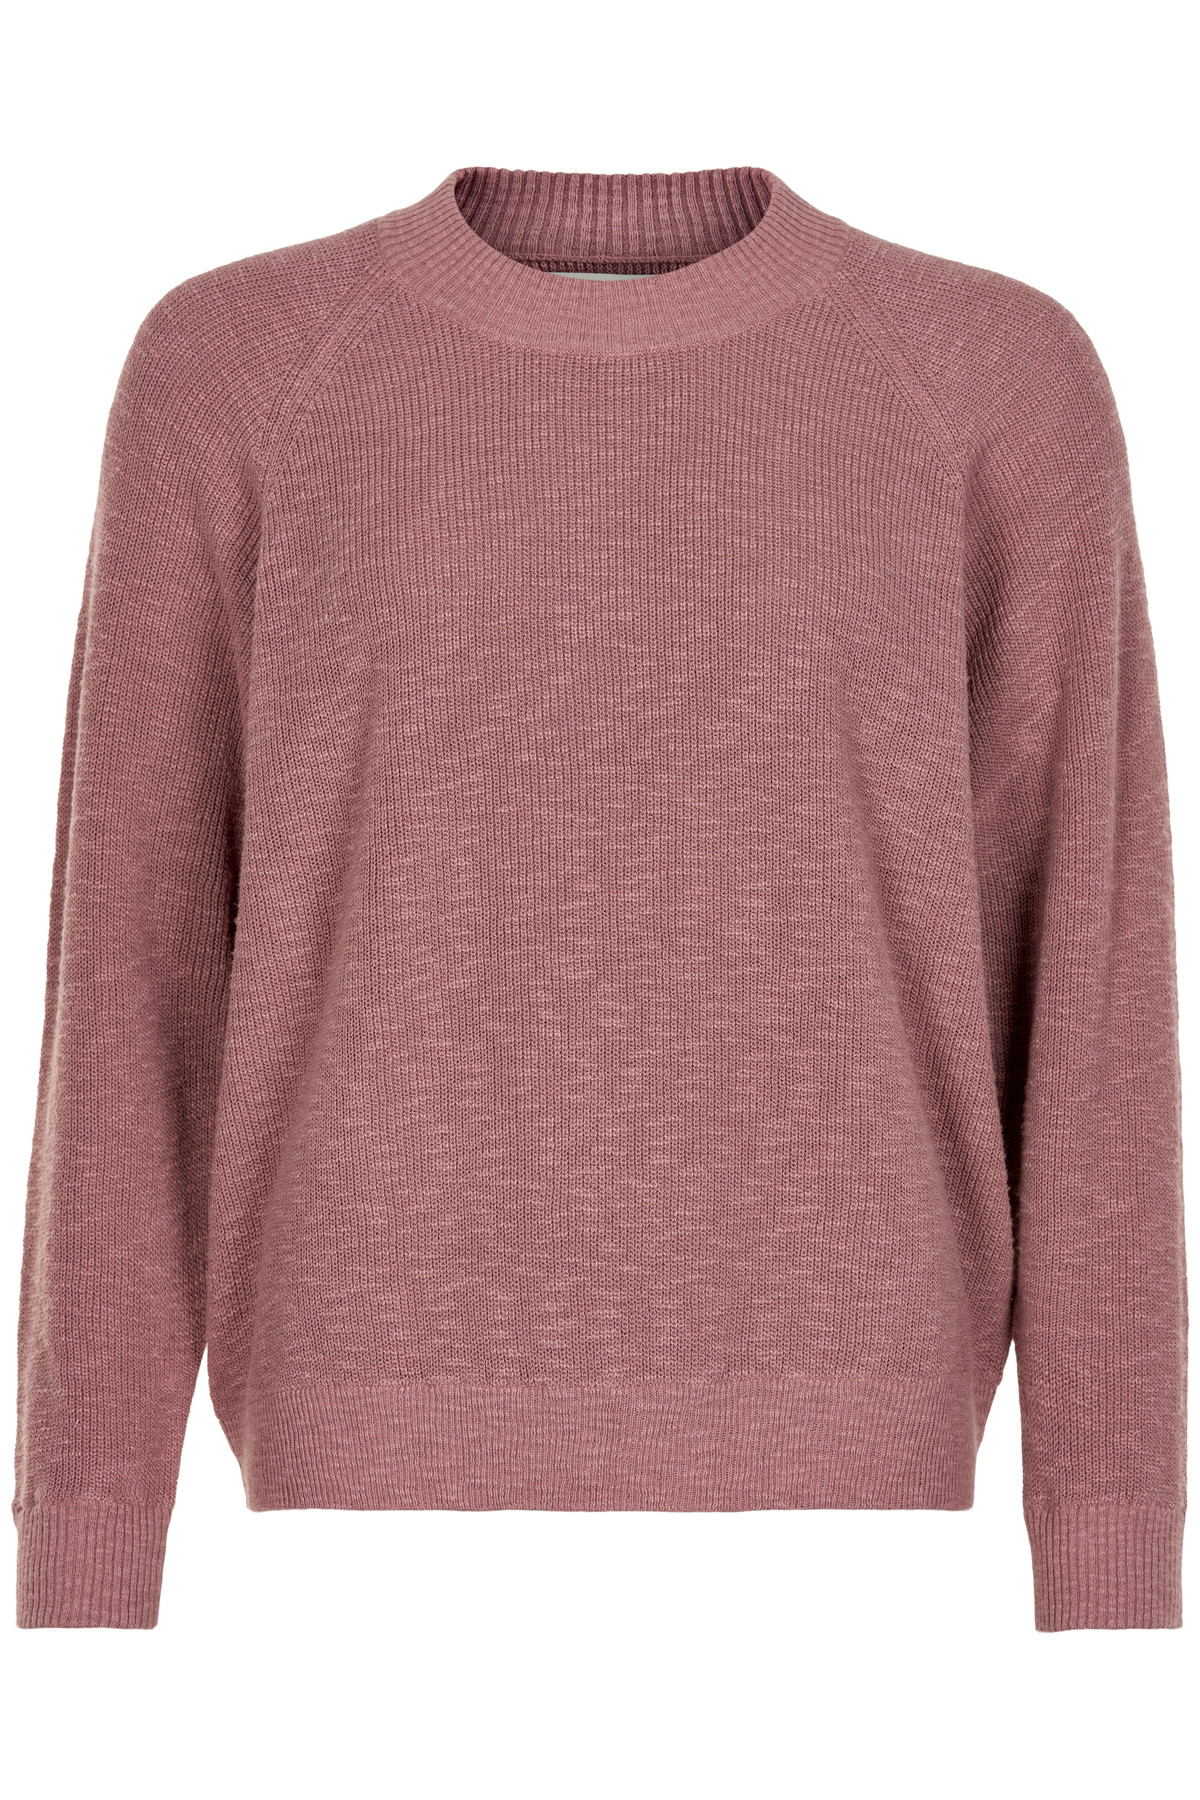 Image of   AND LESS ALBAMBINA PULLOVER 5220201 2530 (Nosta Rose, XS)